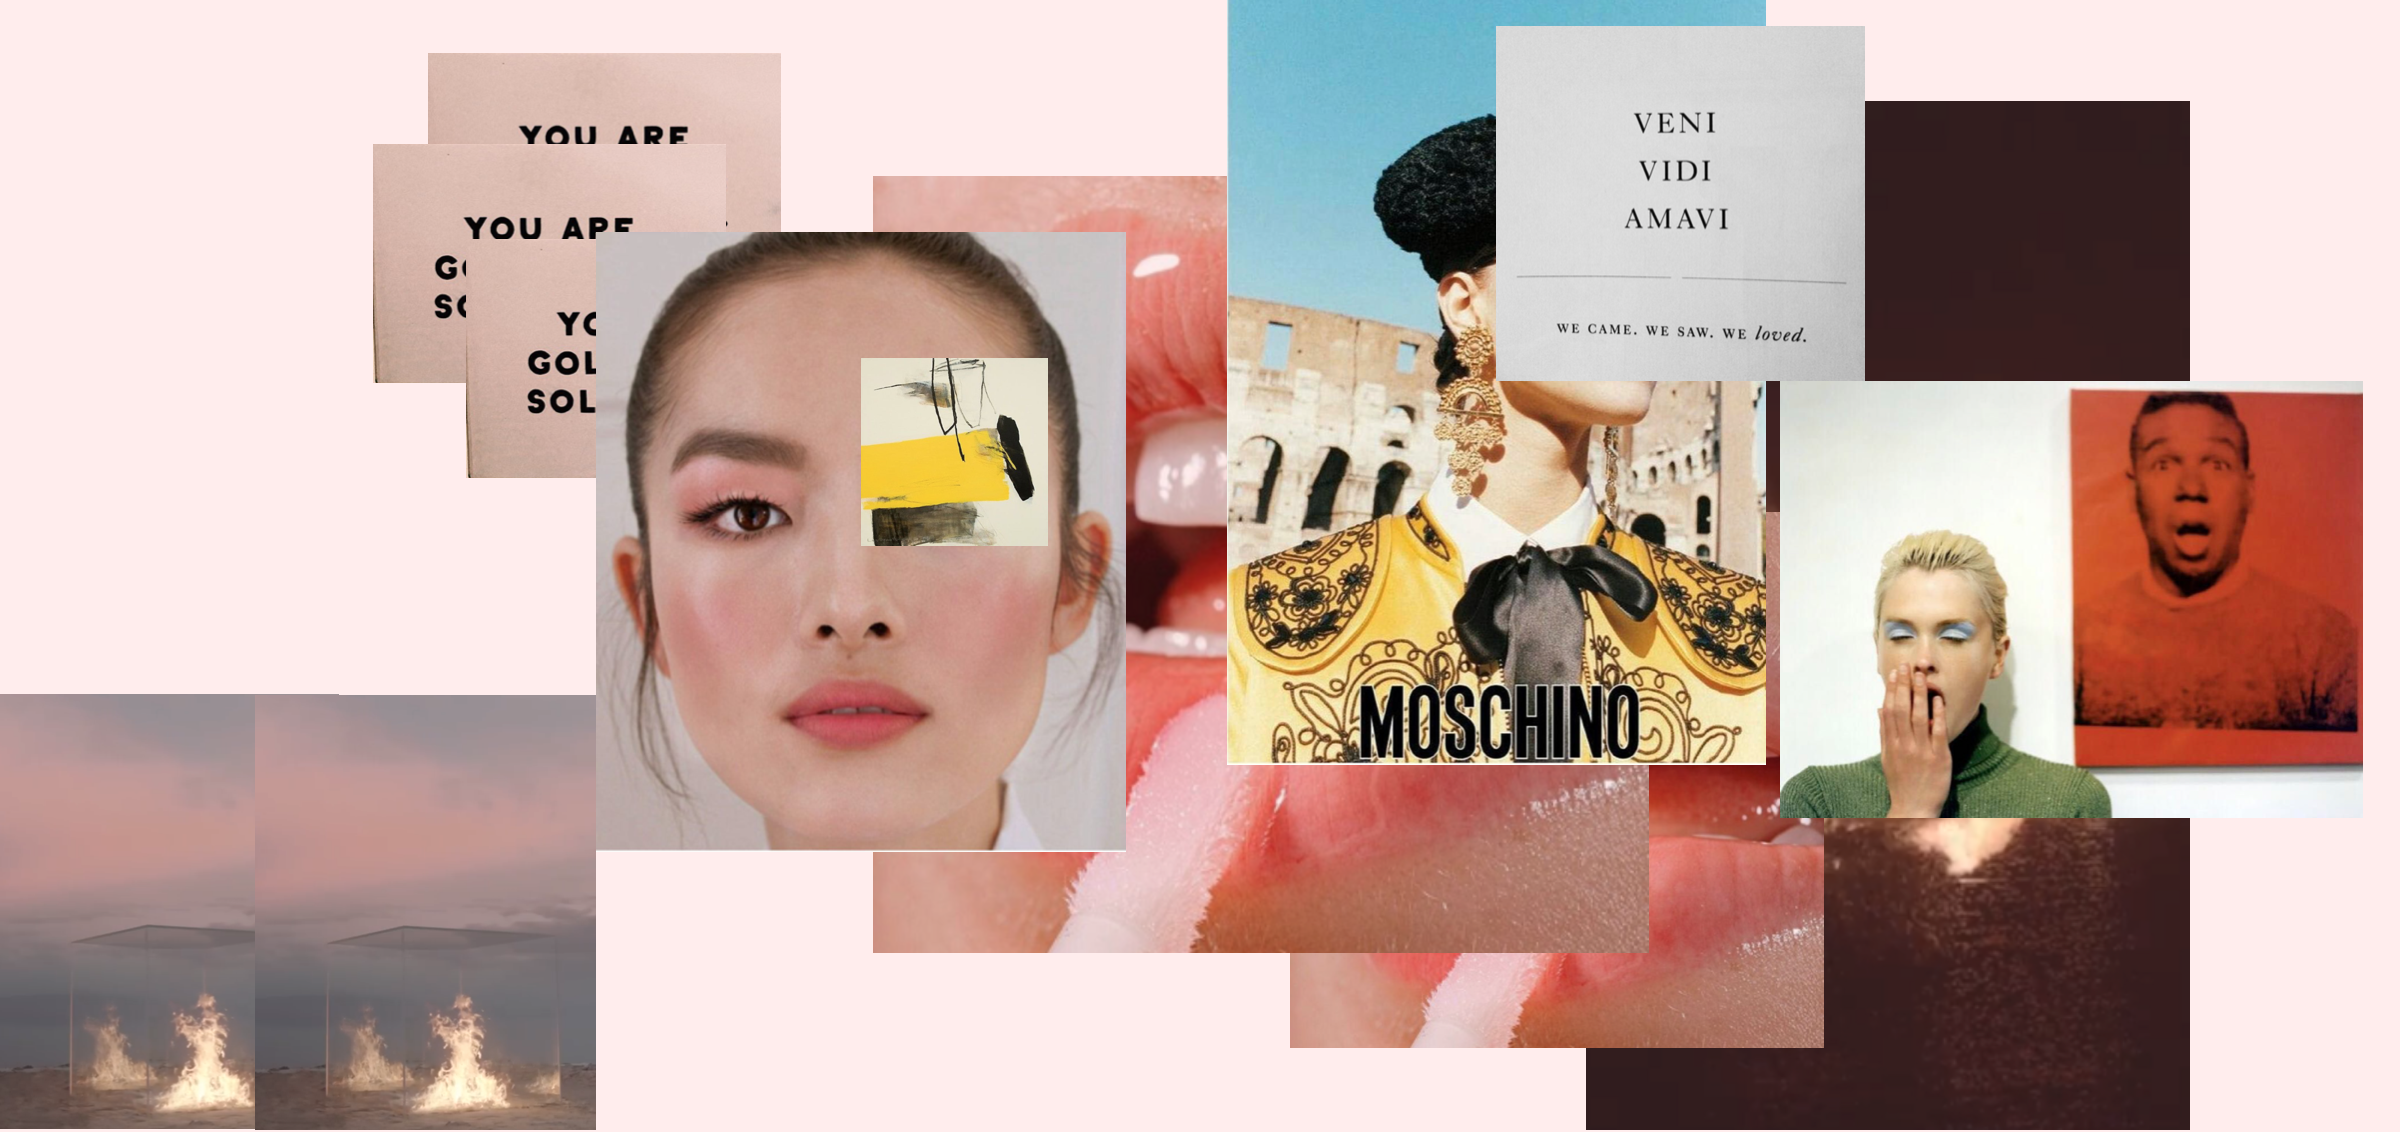 Left to right: Screenshots from 'TRAVIS' YSL S17 /Feifei Sun /'Contact Sensation' by Hyunmee Lee /Glossier Nov 16 / Kasia Struss, Moschino SS12 by Juergen Teller / Kylie Bax, Vogue Italia 96 by Steven Meisel.